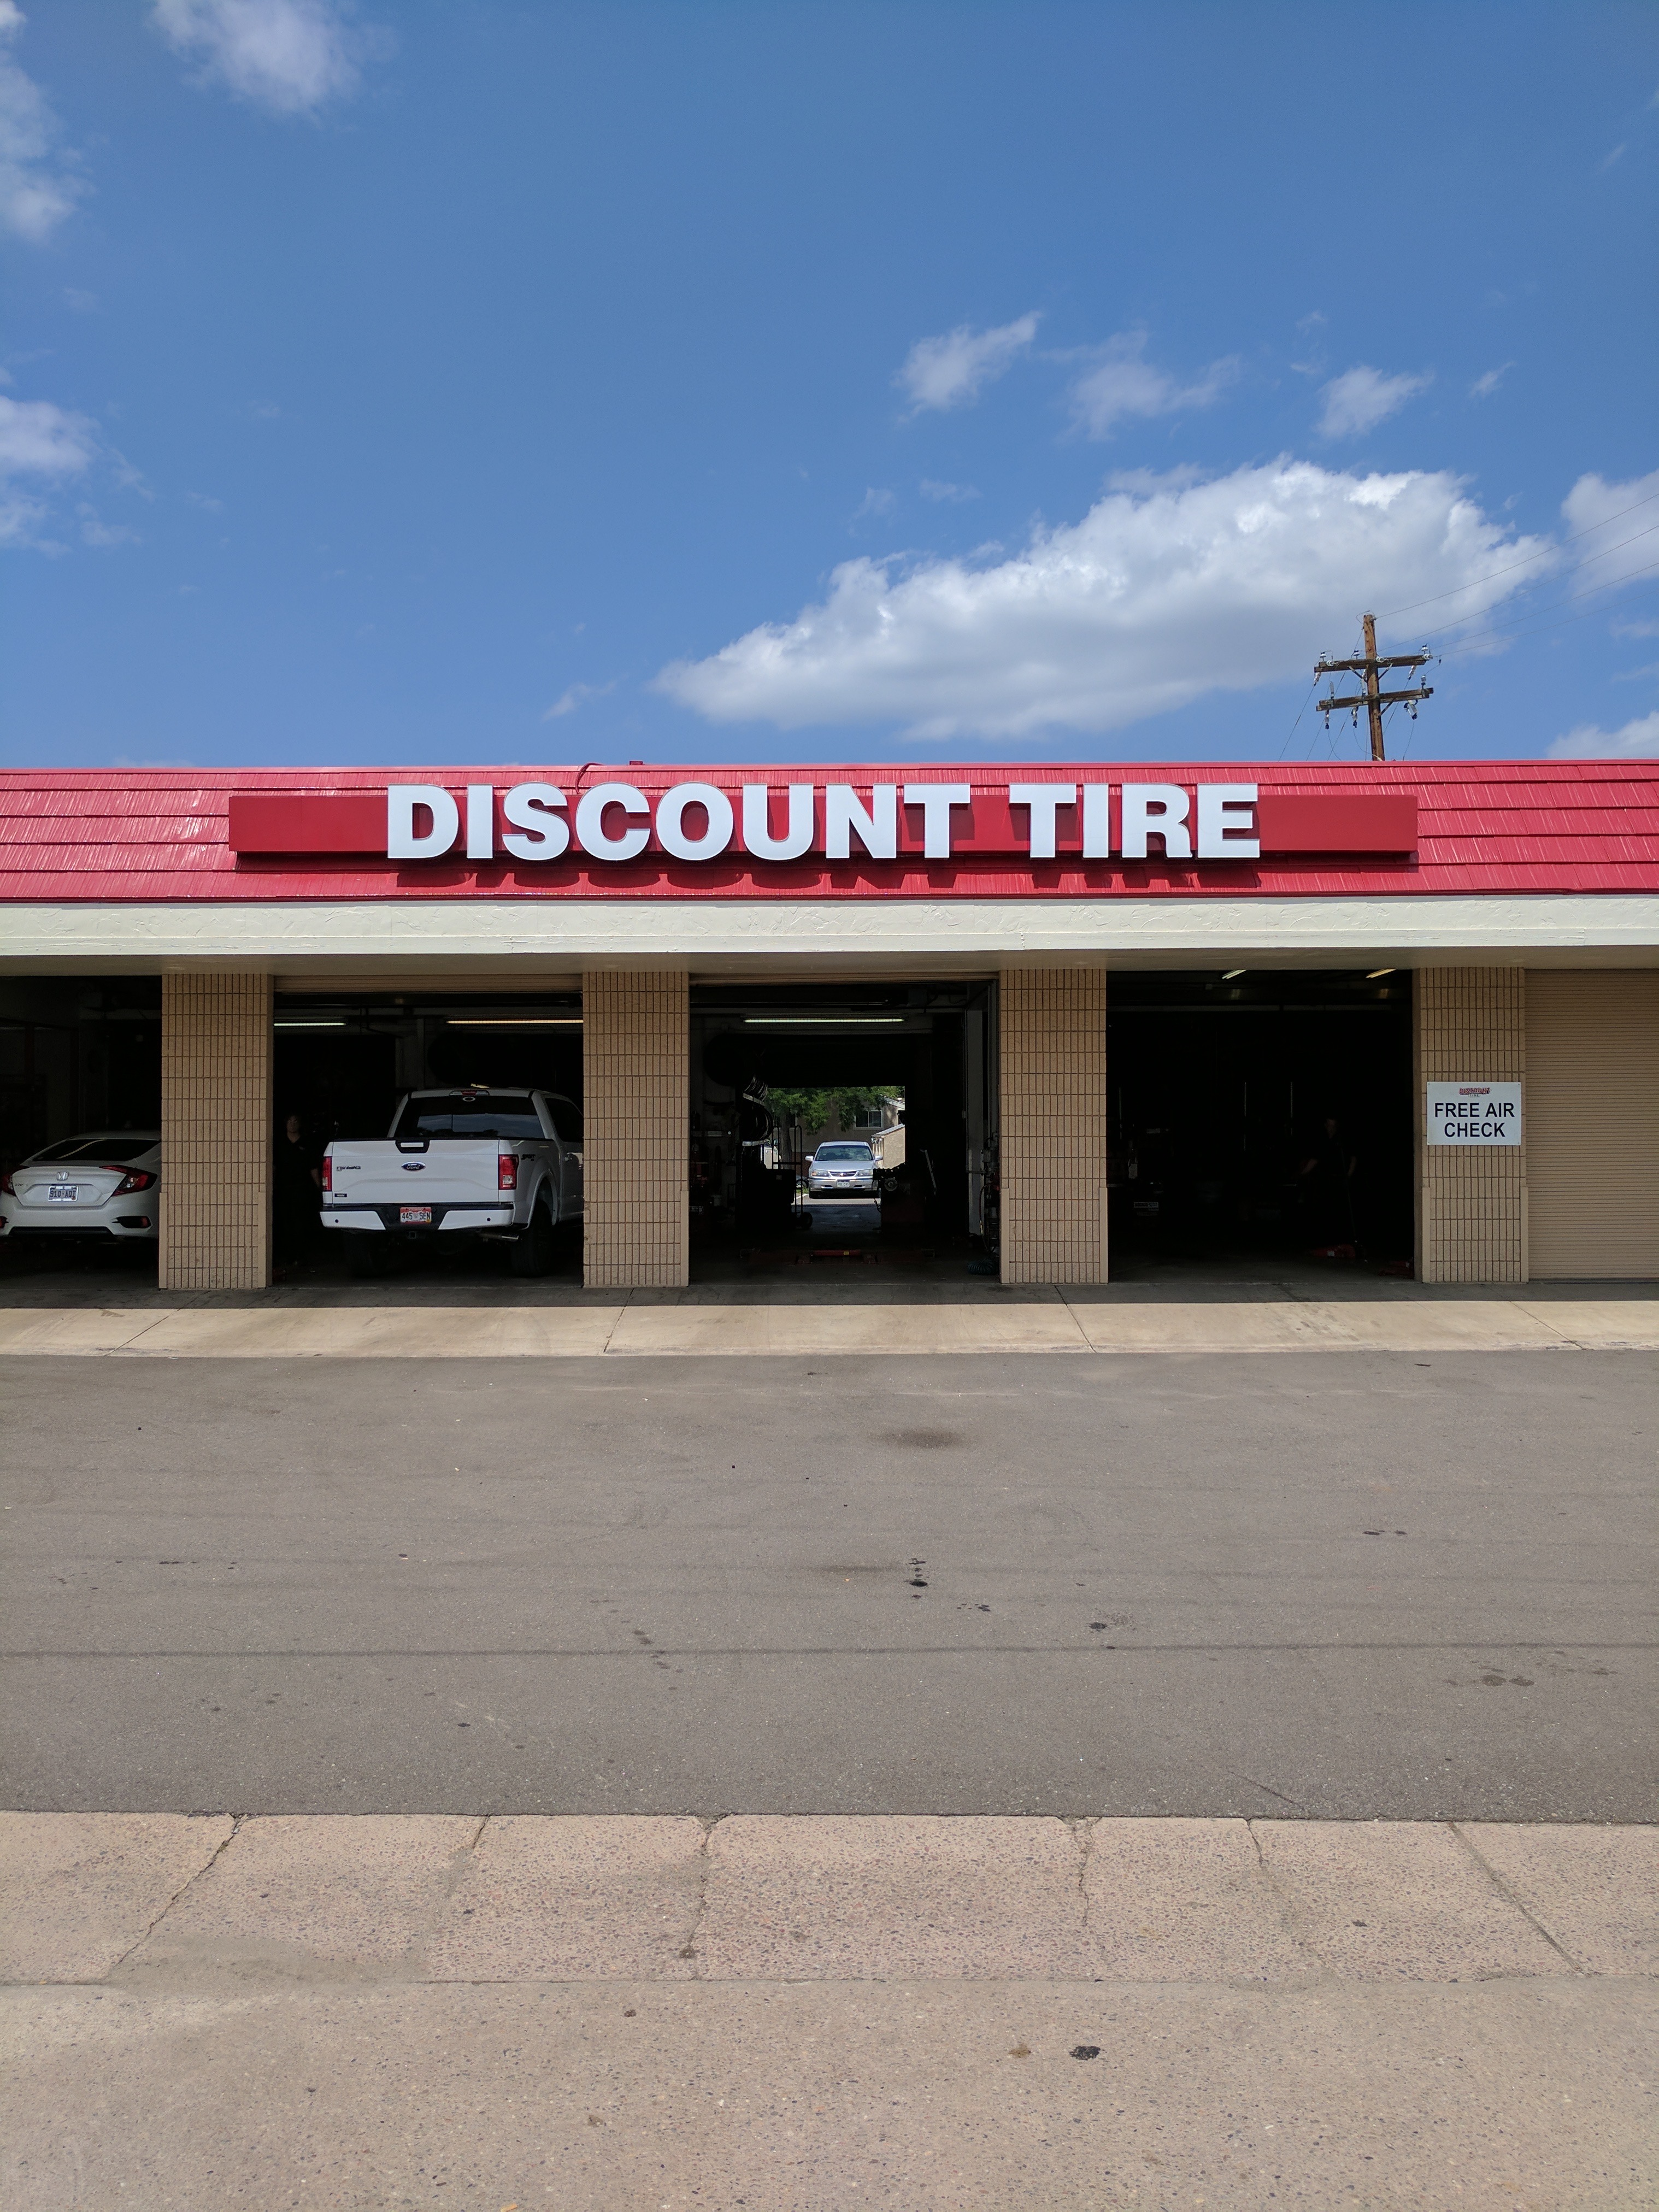 DIscount Tire Sign